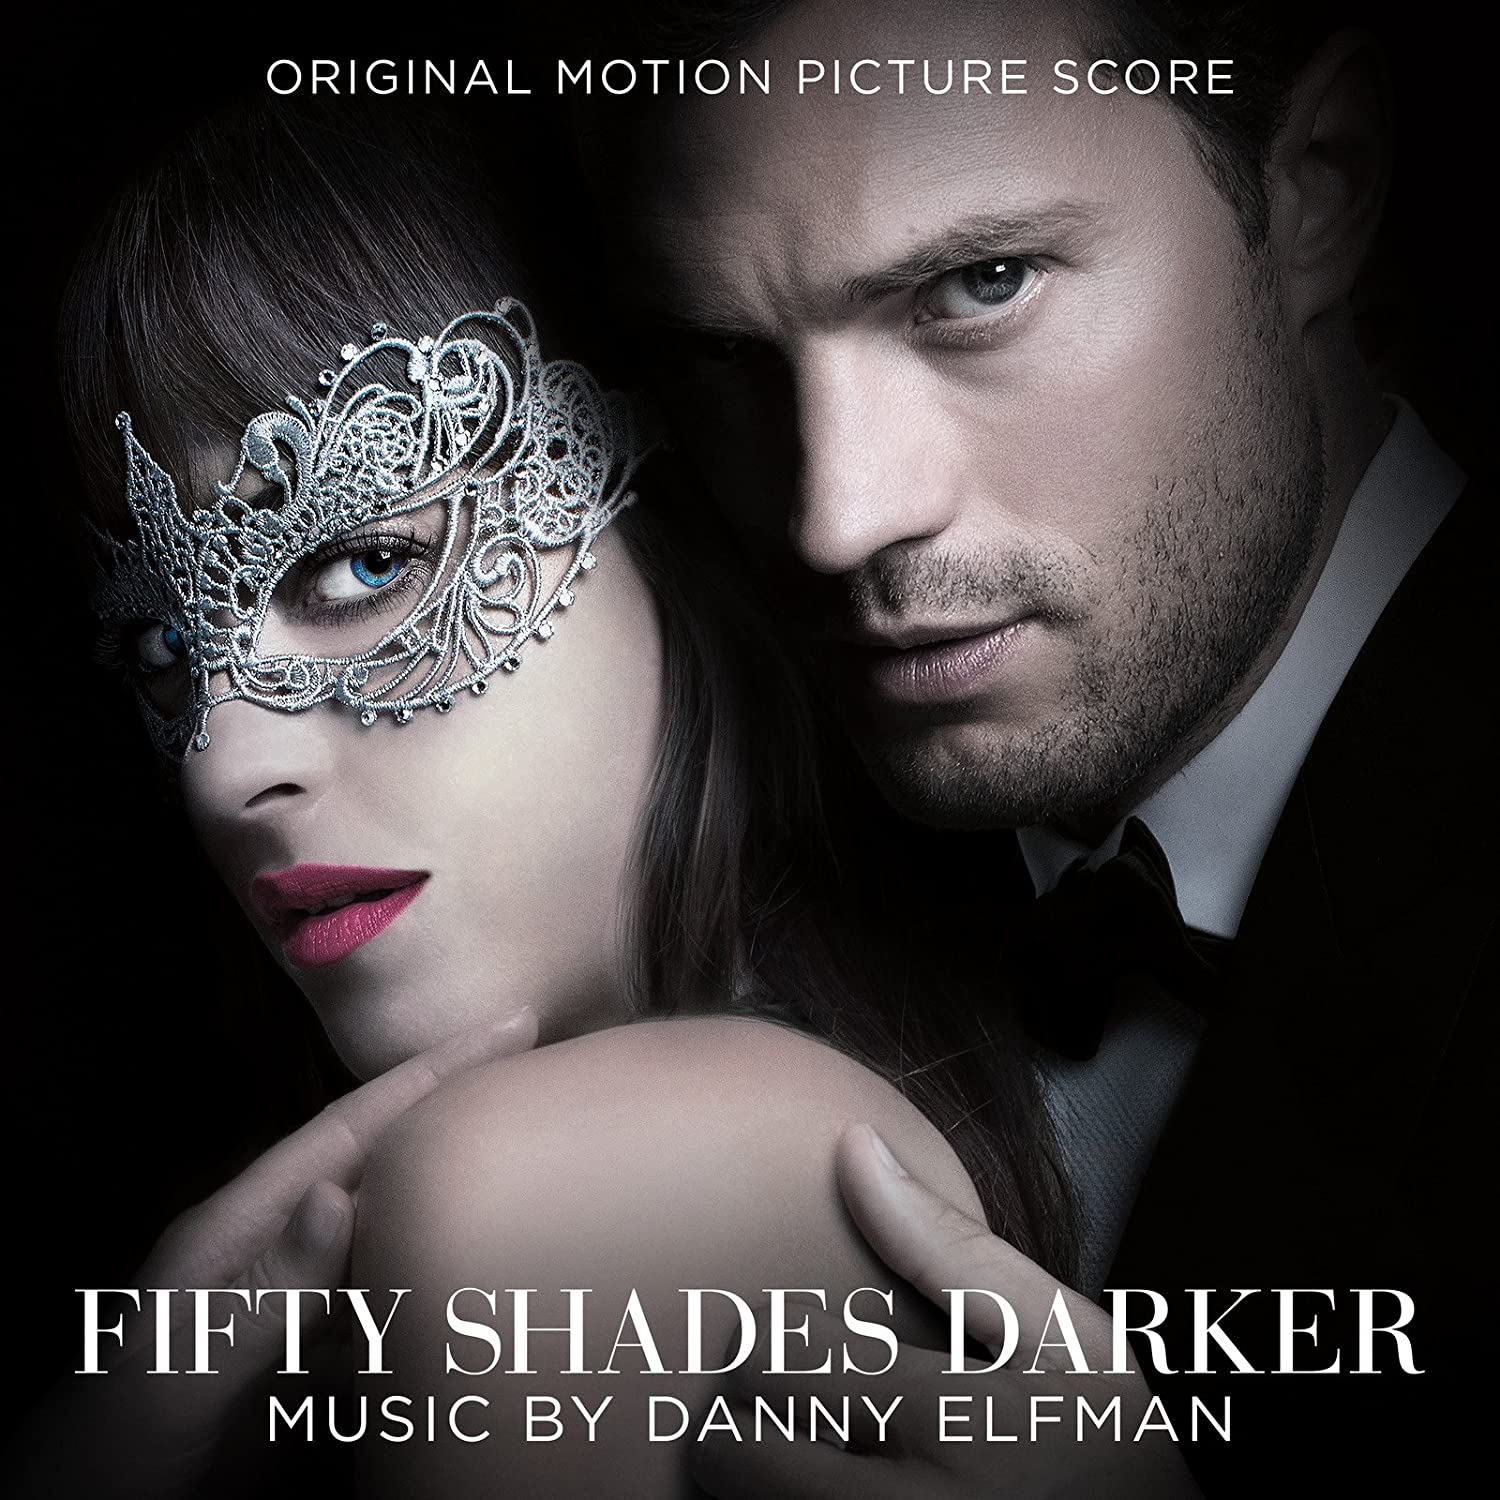 fifty shades darker free download in hindi